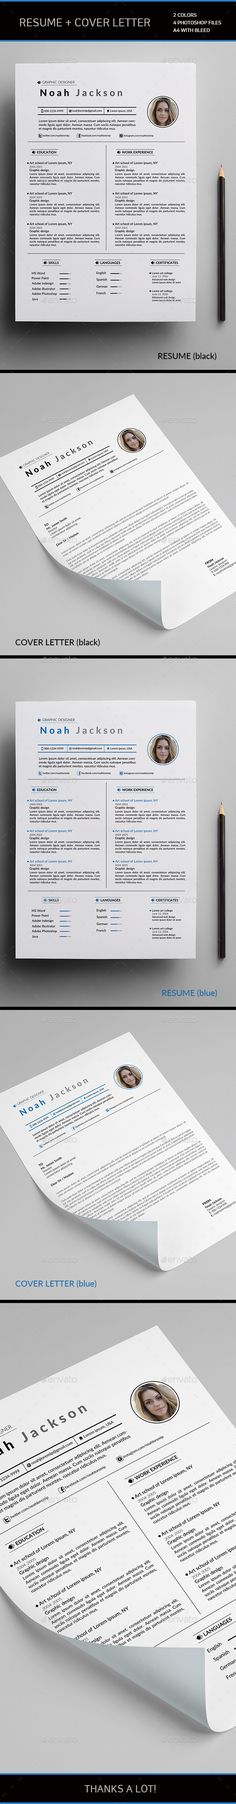 Resume by SOL_ILLUST Resume   Cover letter  2 colors (blue